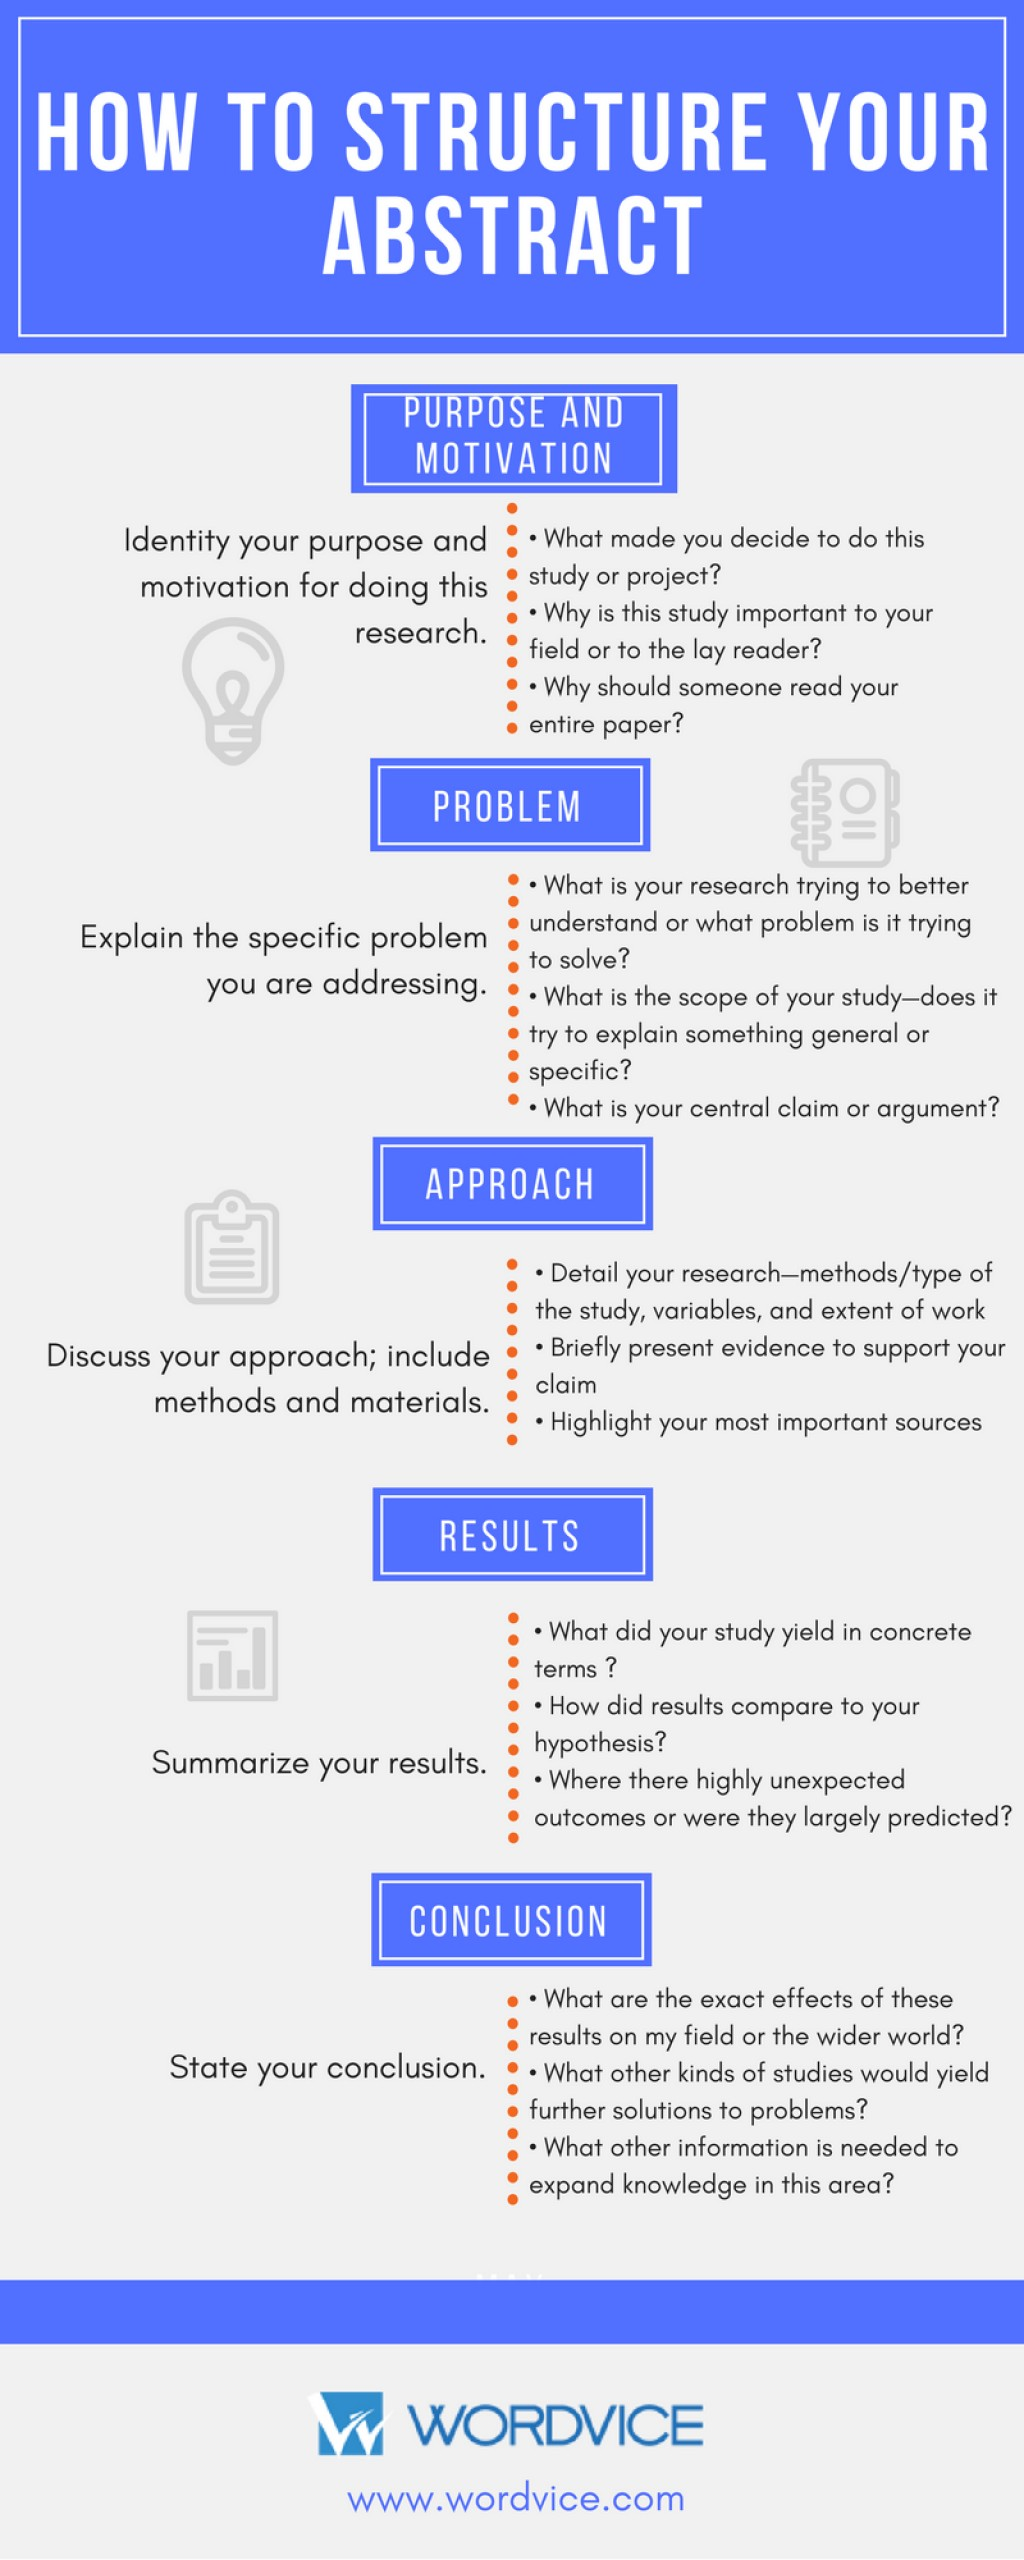 014 How To Structure Your Abstract1 Research Paper Marvelous Do Review Write A Outline Owl Purdue Citing Sources Large